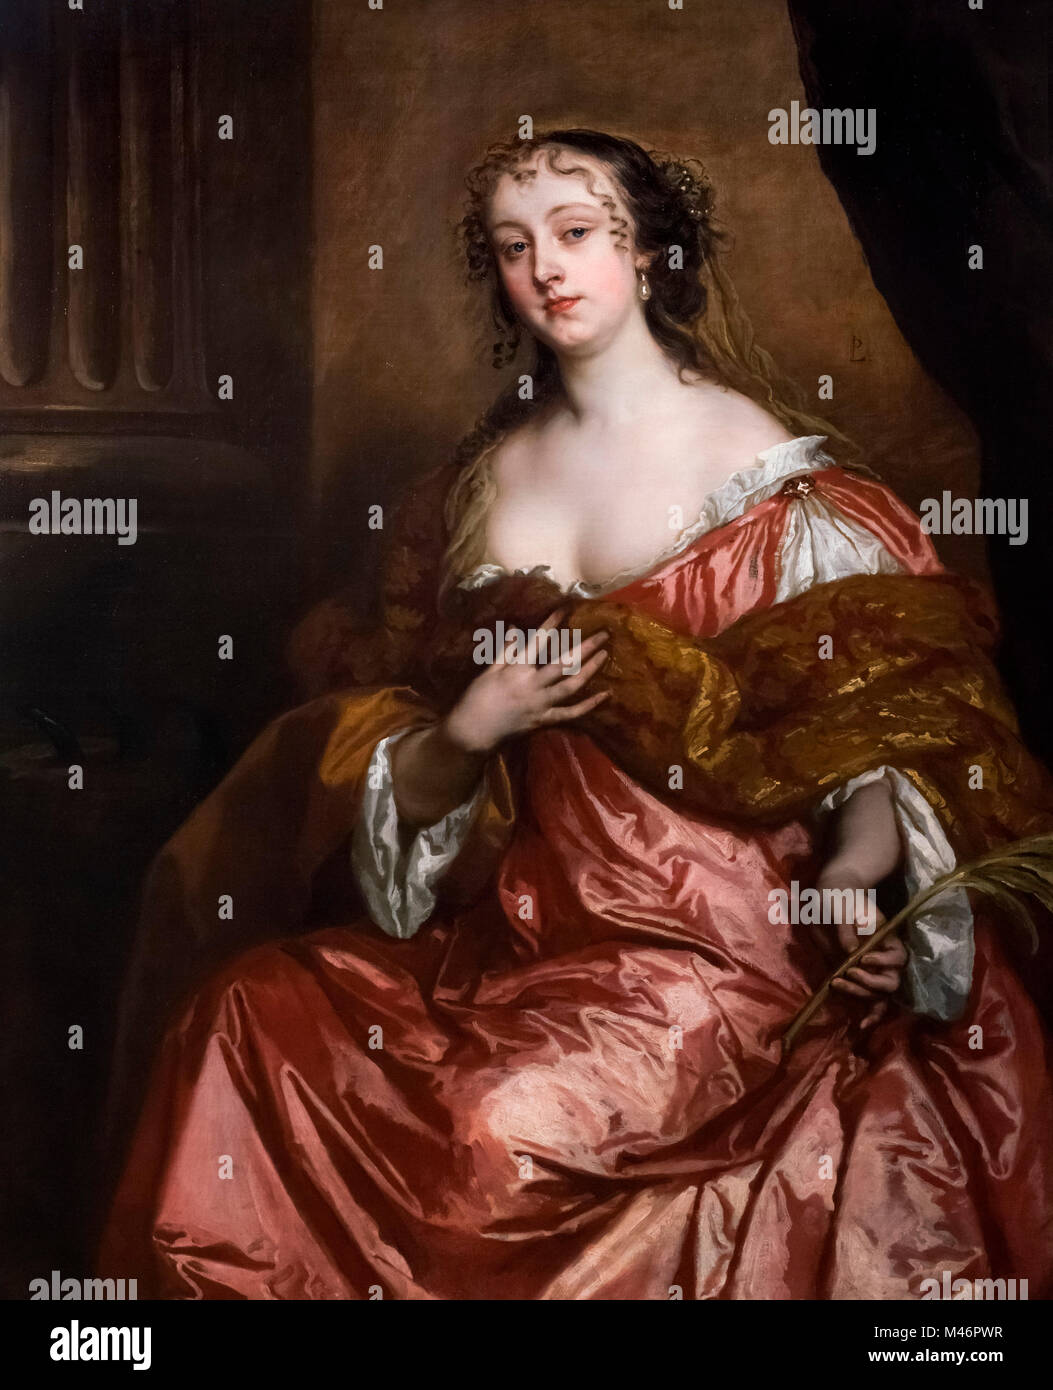 Elizabeth Hamilton, Countess of Gramont (1640-1708), a noted beauty in the Restoration period and one of the 'Windsor - Stock Image